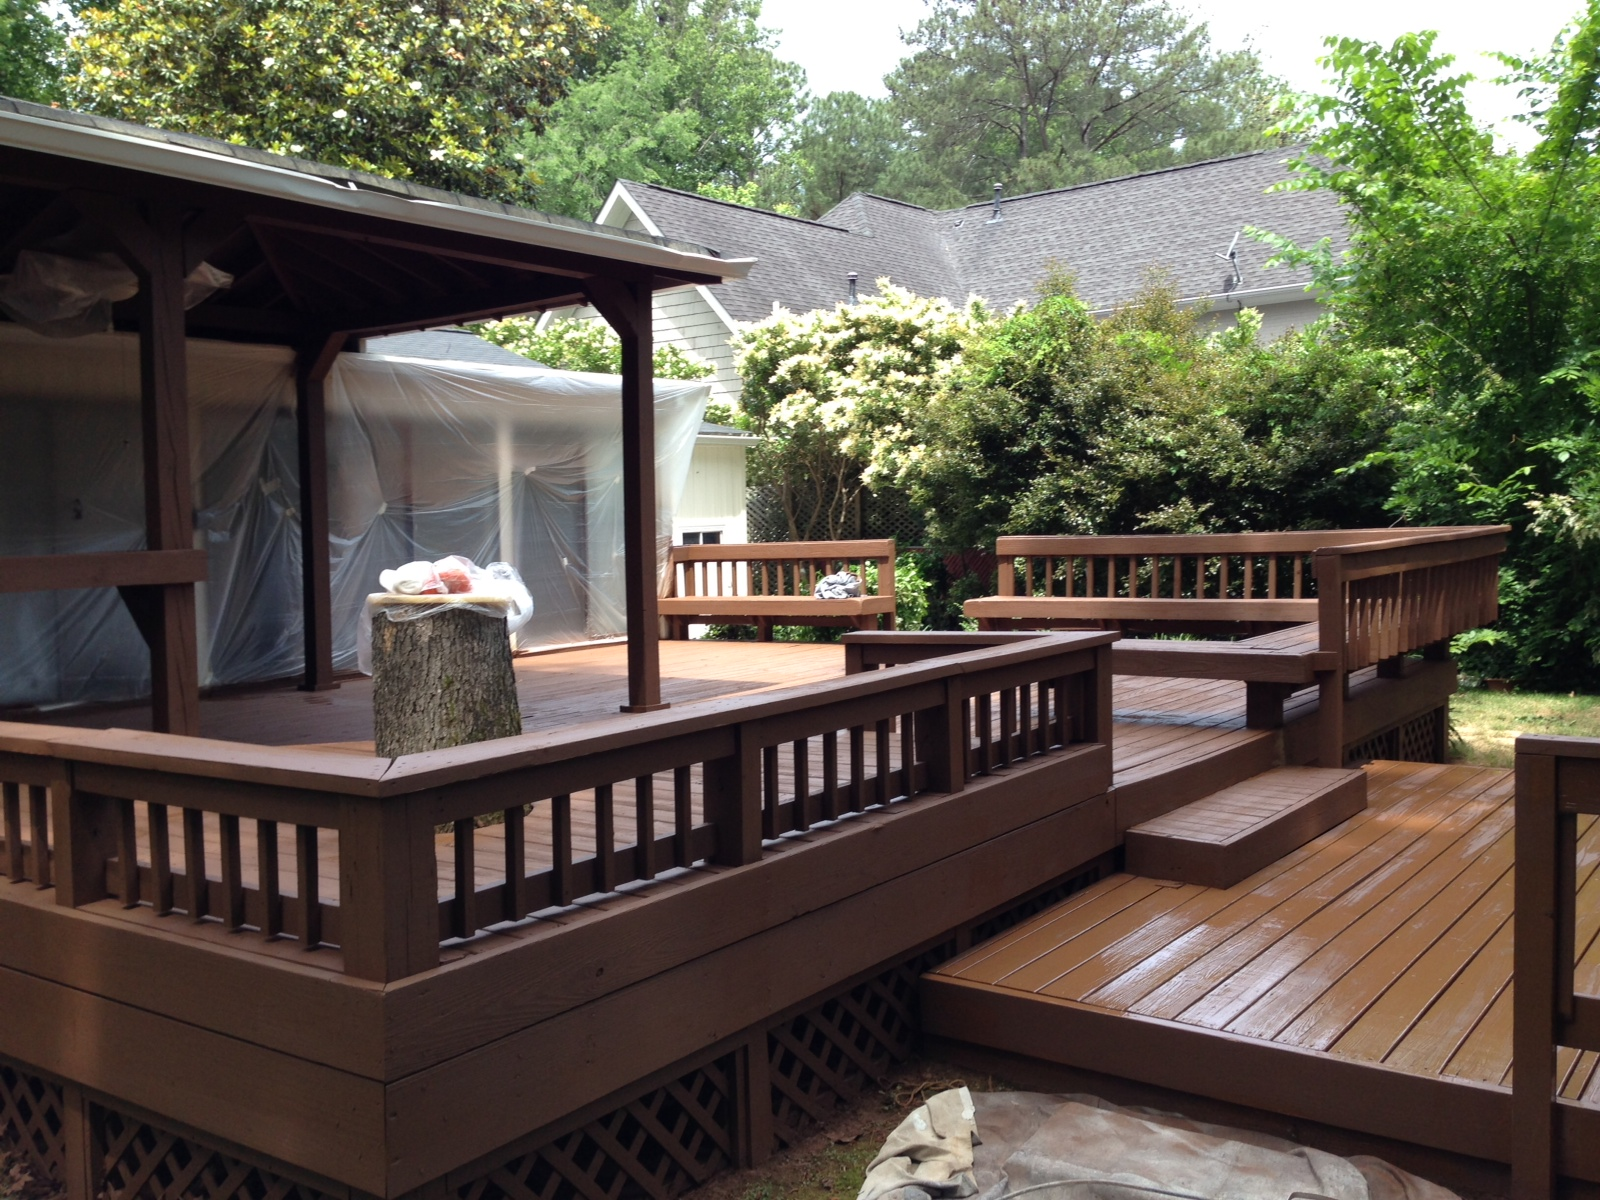 Atlanta Curb Appeal East Cobb And Sandy Spring Bathrooms Kitchens Decks Porticos And Porches